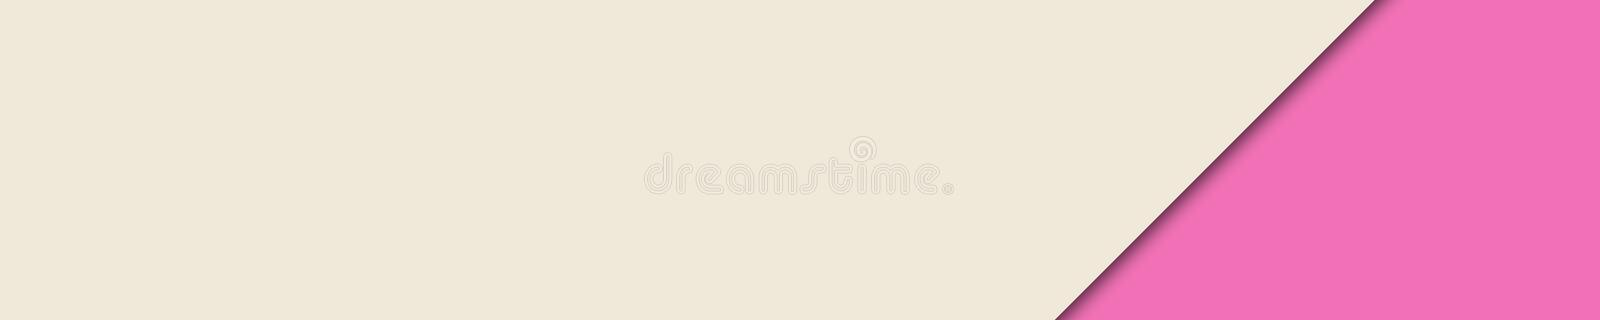 Elegant banner pink and beige colors for website stock photos